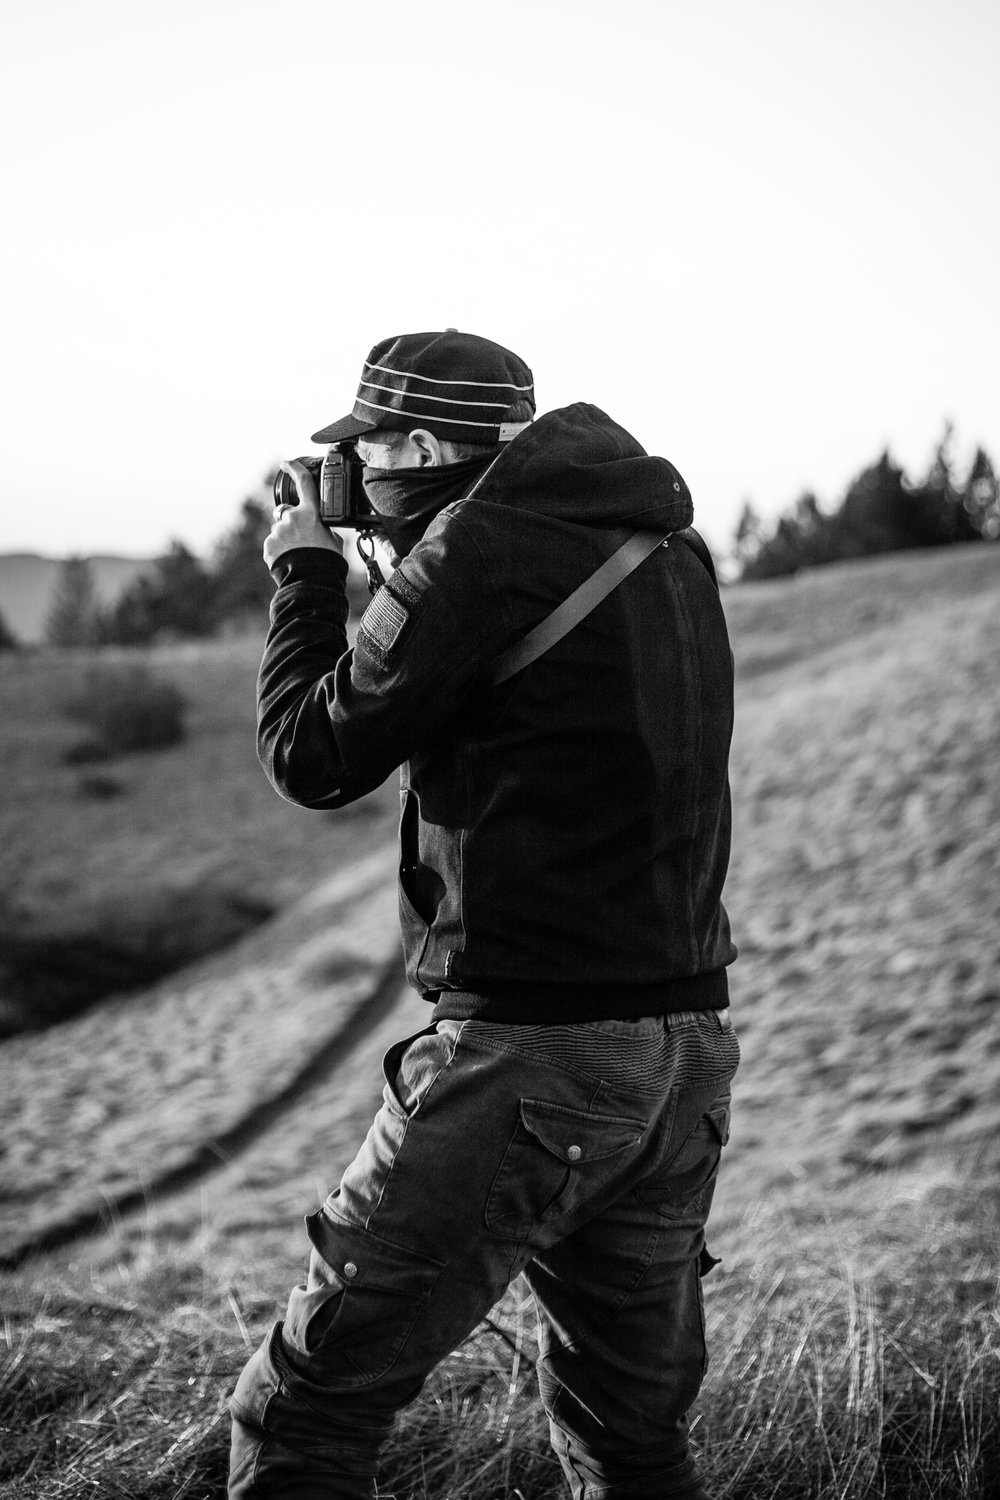 Erik with his Gunslinger Solo Strap getting the shot. Nothing escapes his frame. Pew pew.